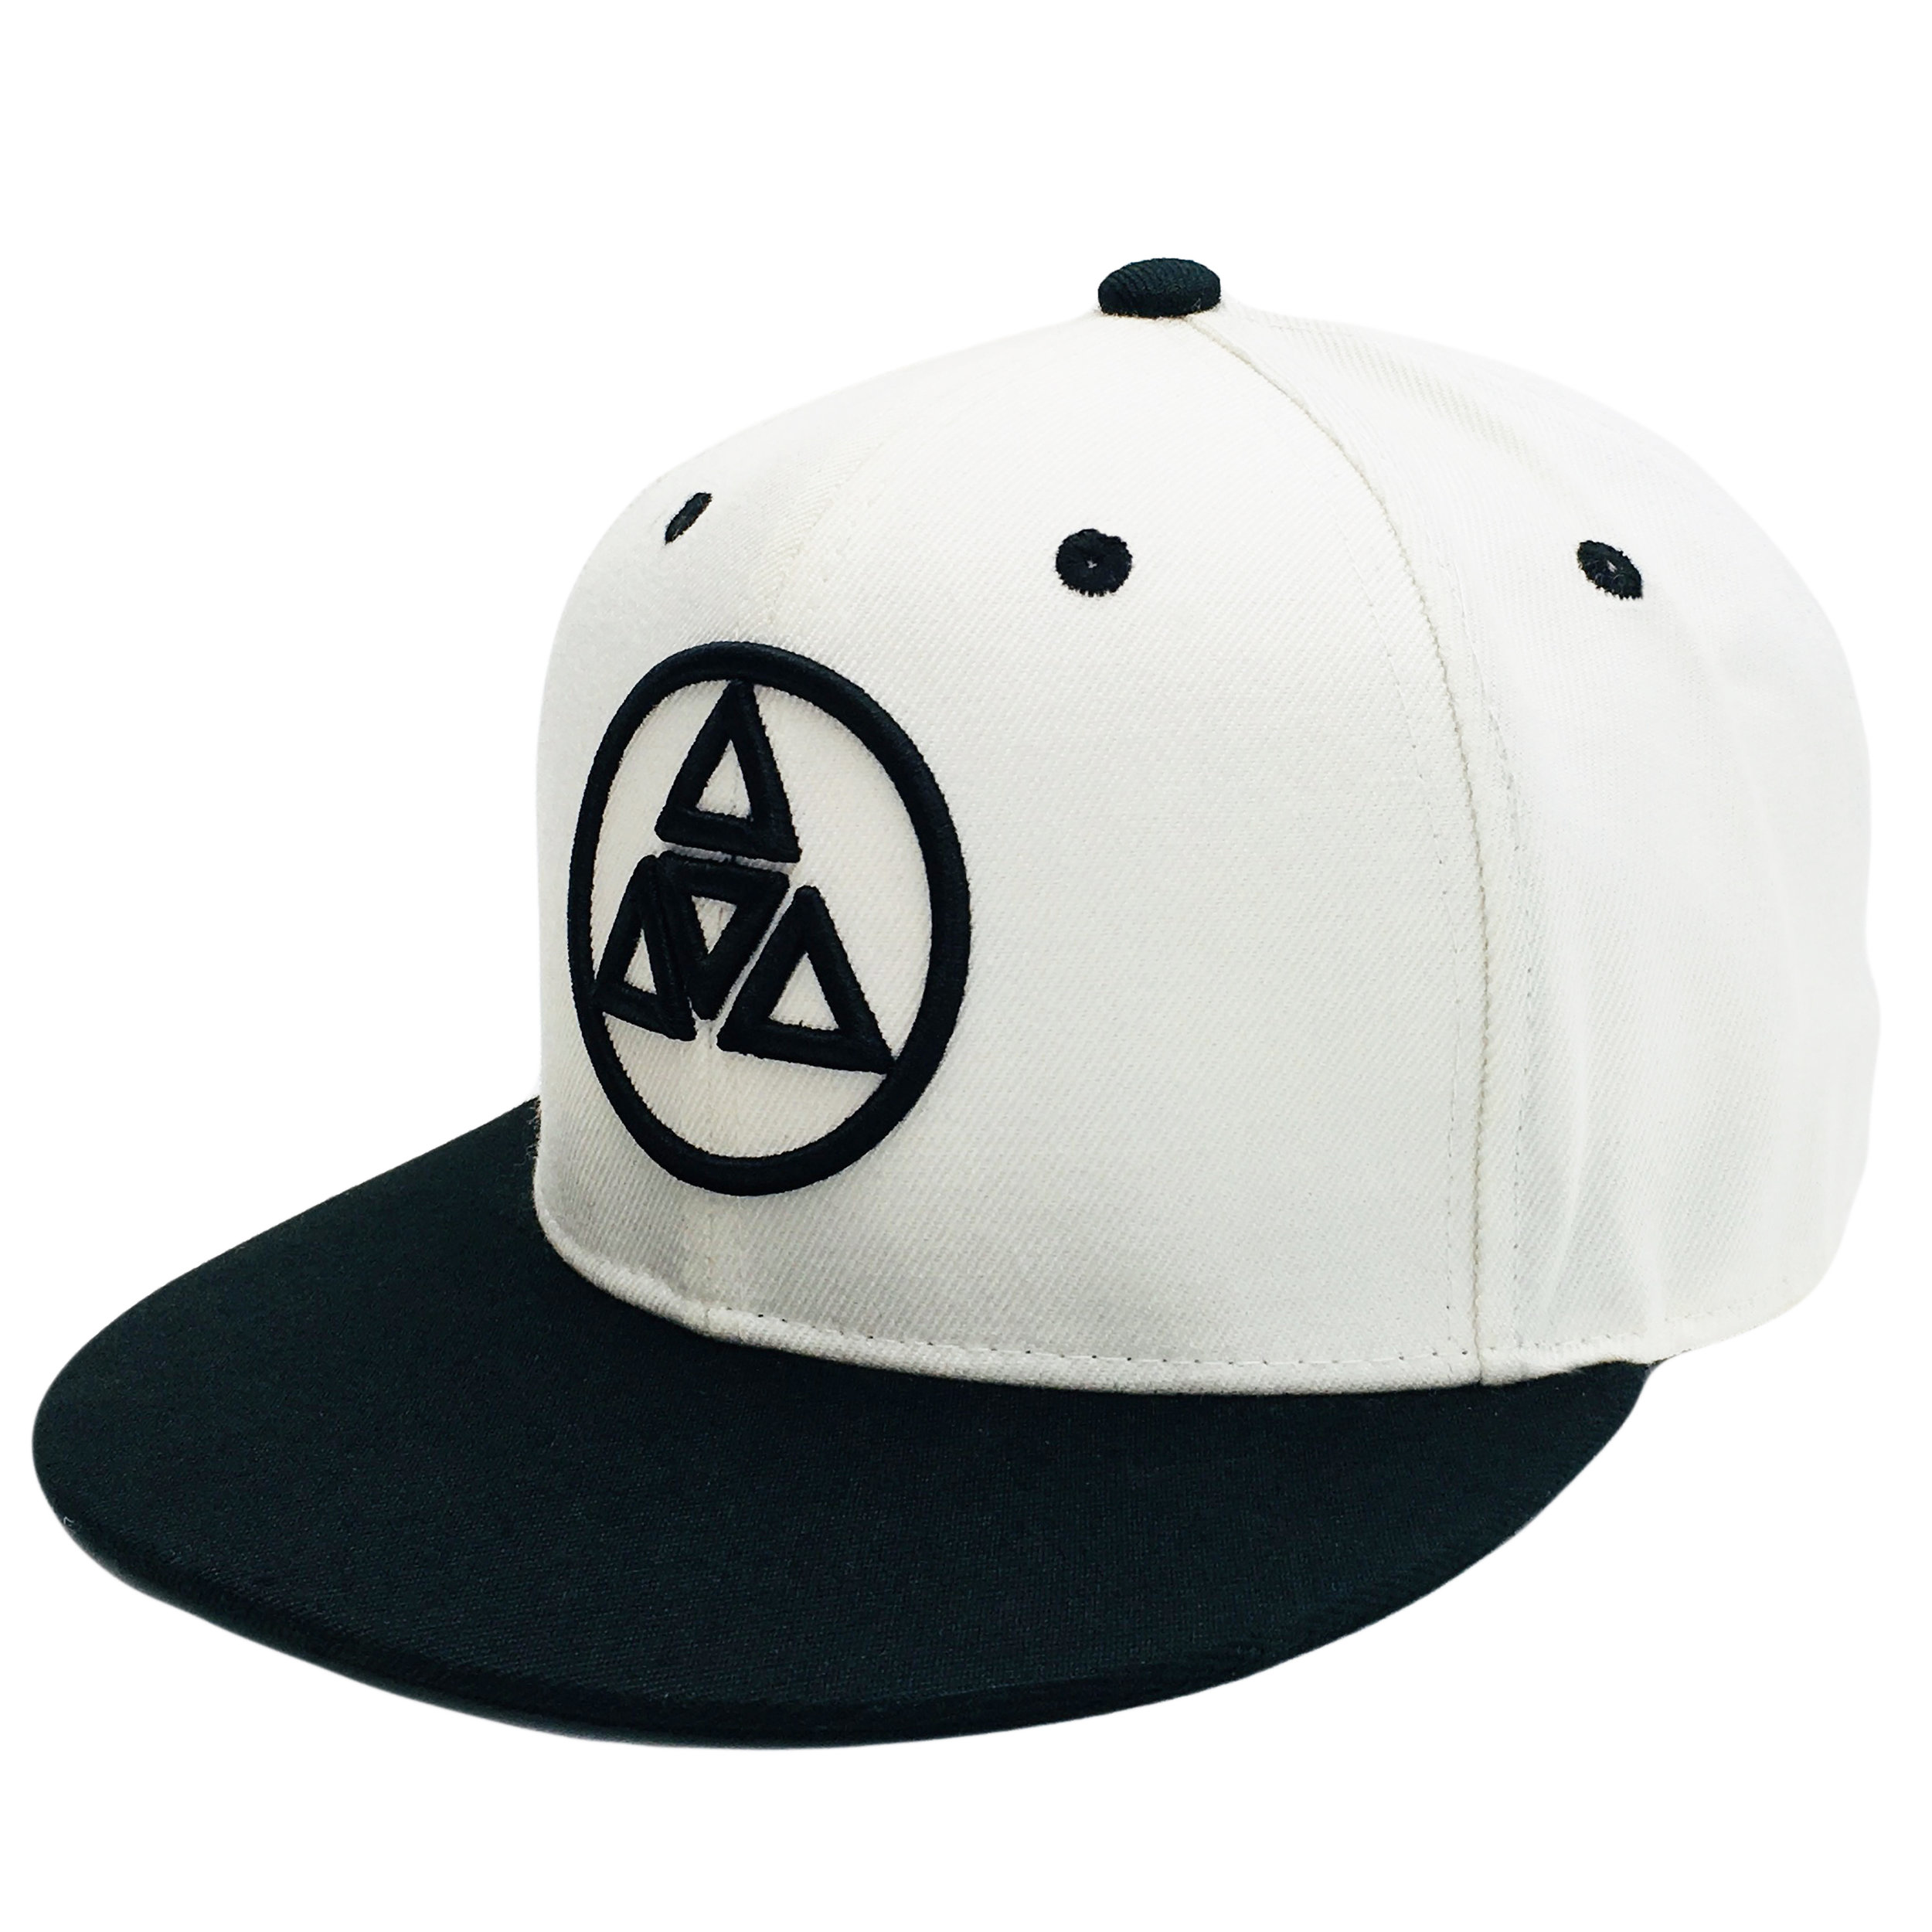 Copy of Copy of Custom 3D Embroidery 6 Panel Snapback